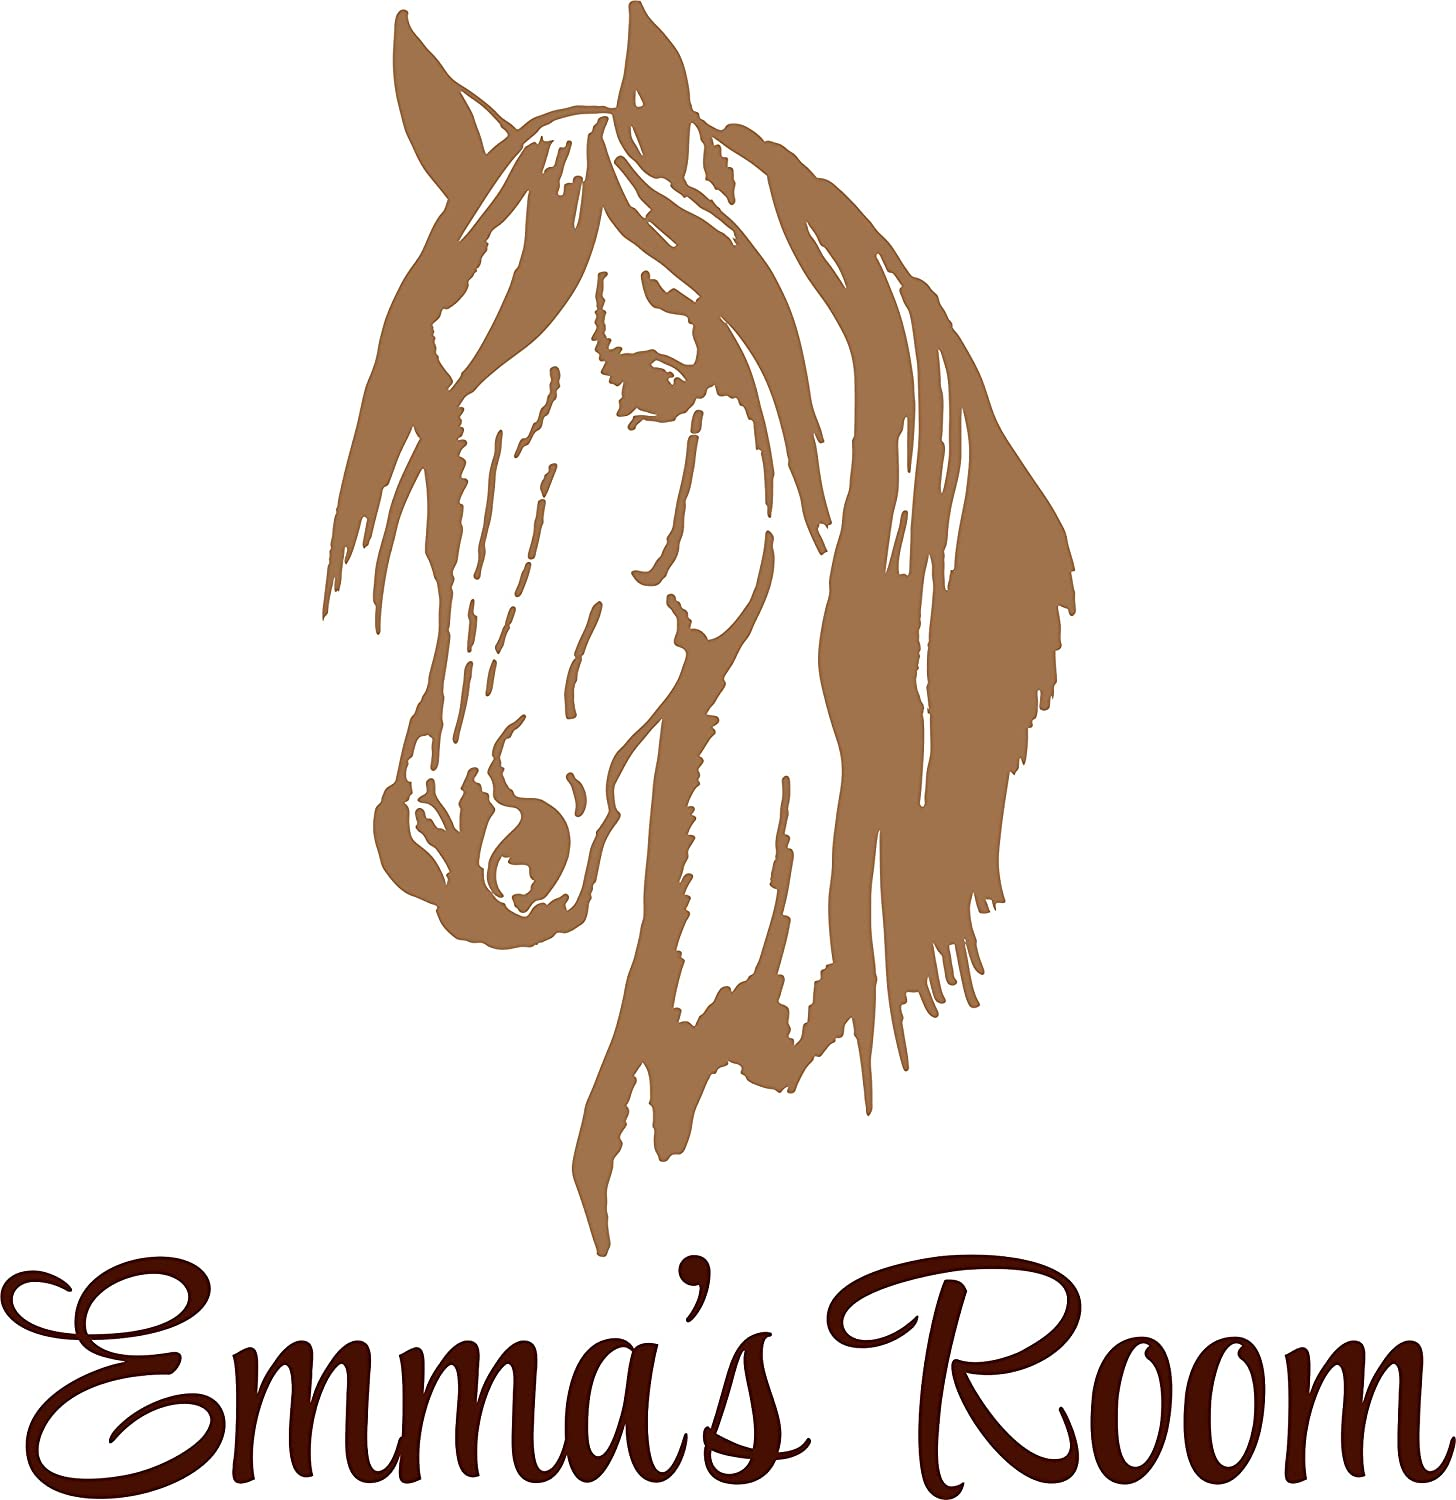 Horse Wall Decal Personalized With Name Boy Girl Bedroom Wall Decal Equestrian Cowboy Cowgirl Horse Vinyl For Kids Room Horse Nursery Decor